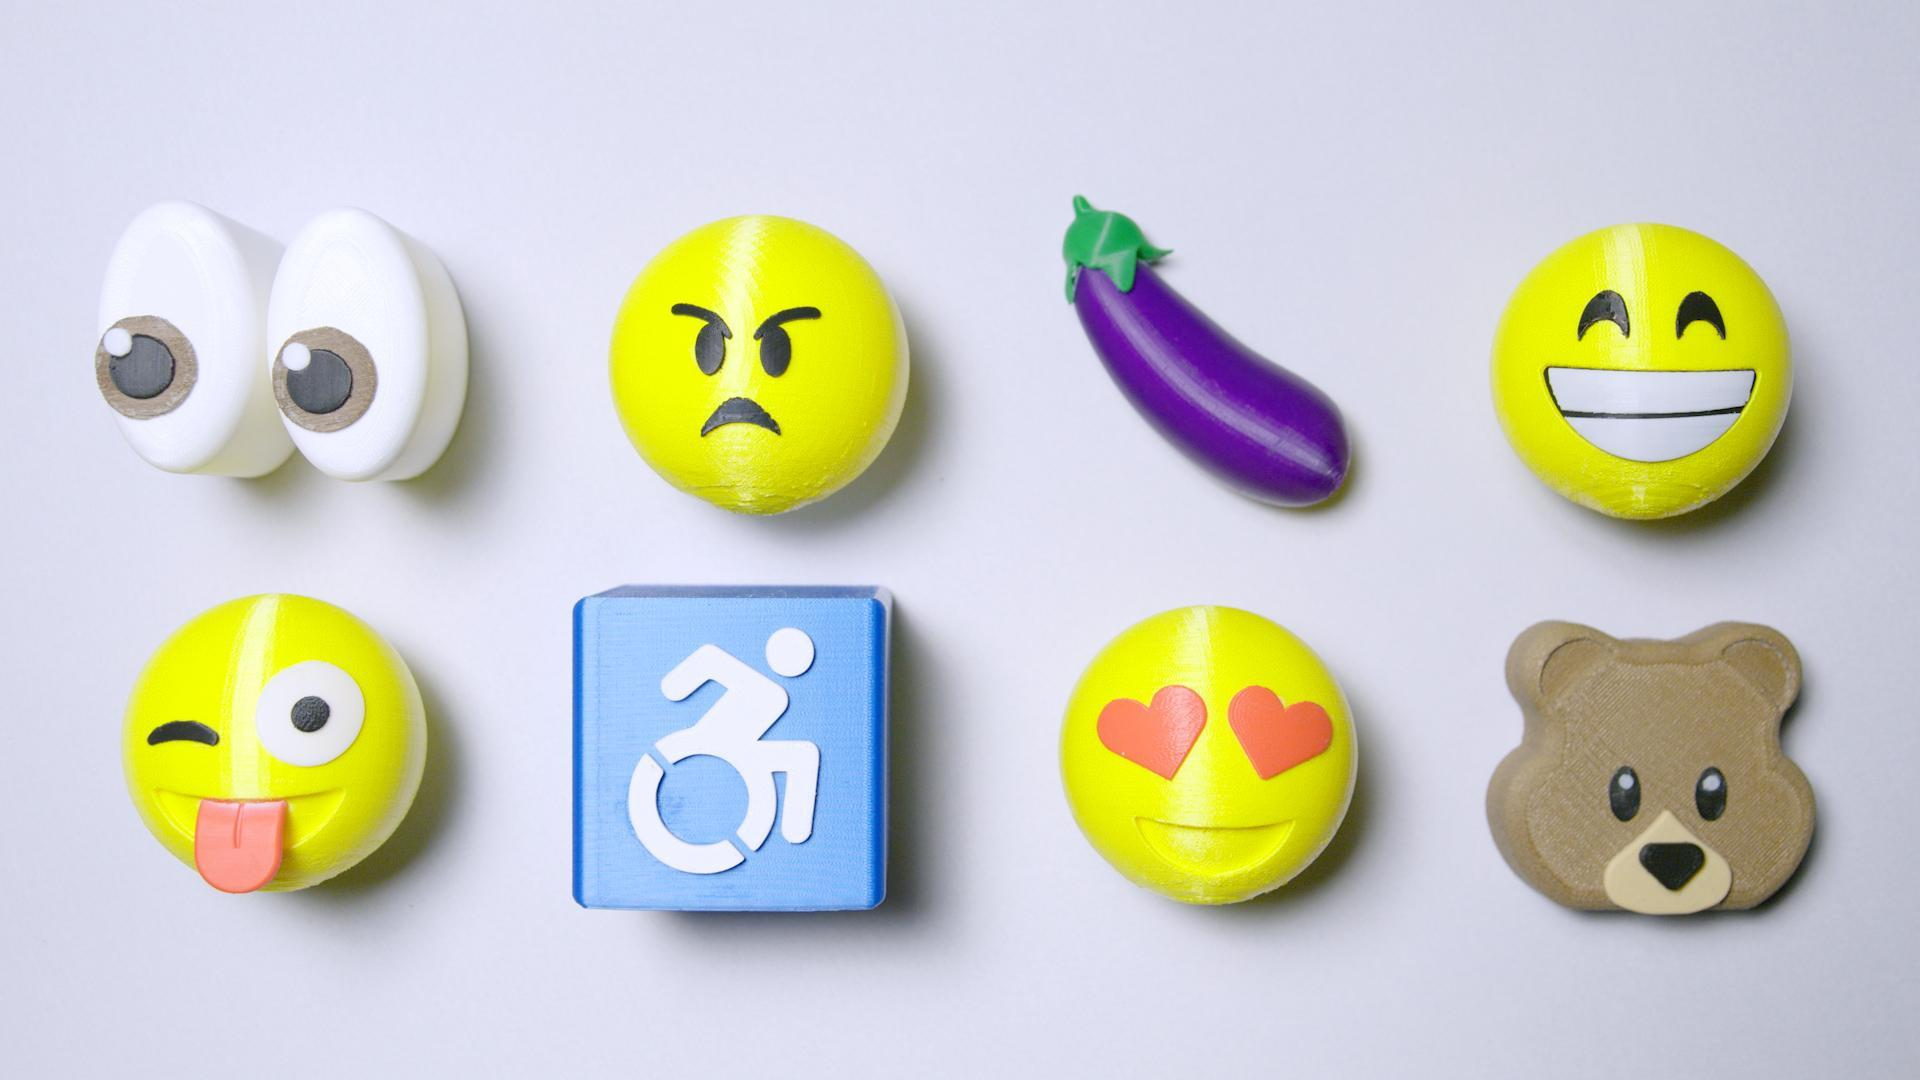 Groucho Mask, Man In Wedding Veil And Cockroach Among Year's Newest Emoji